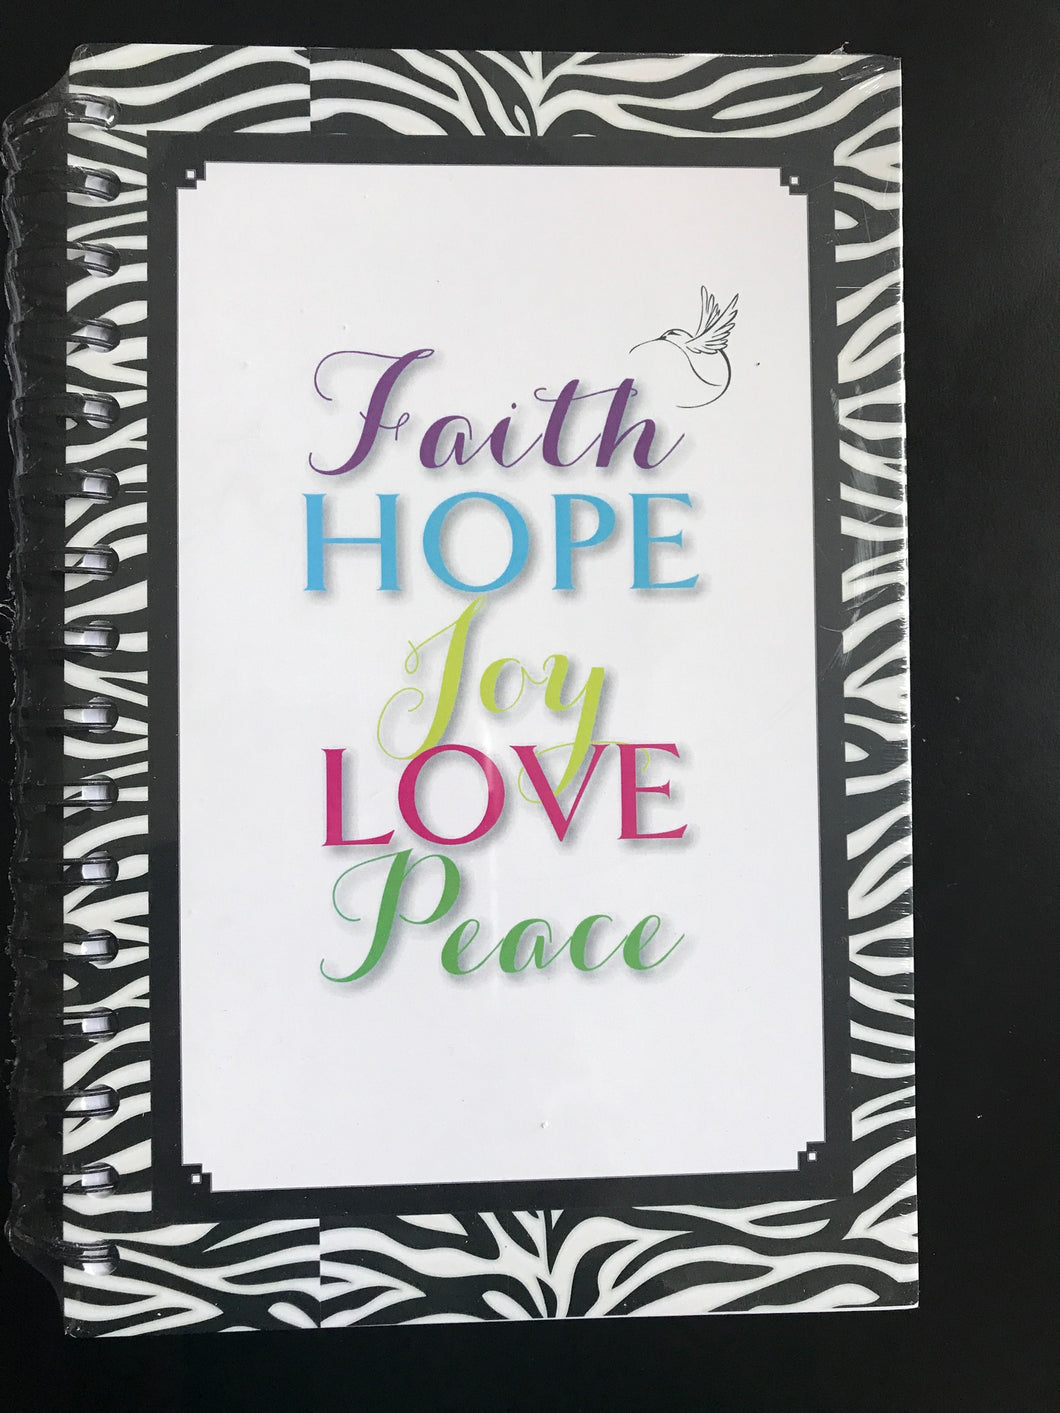 ABIDE Journal - FAITH, HOPE, JOY, LOVE, PEACE